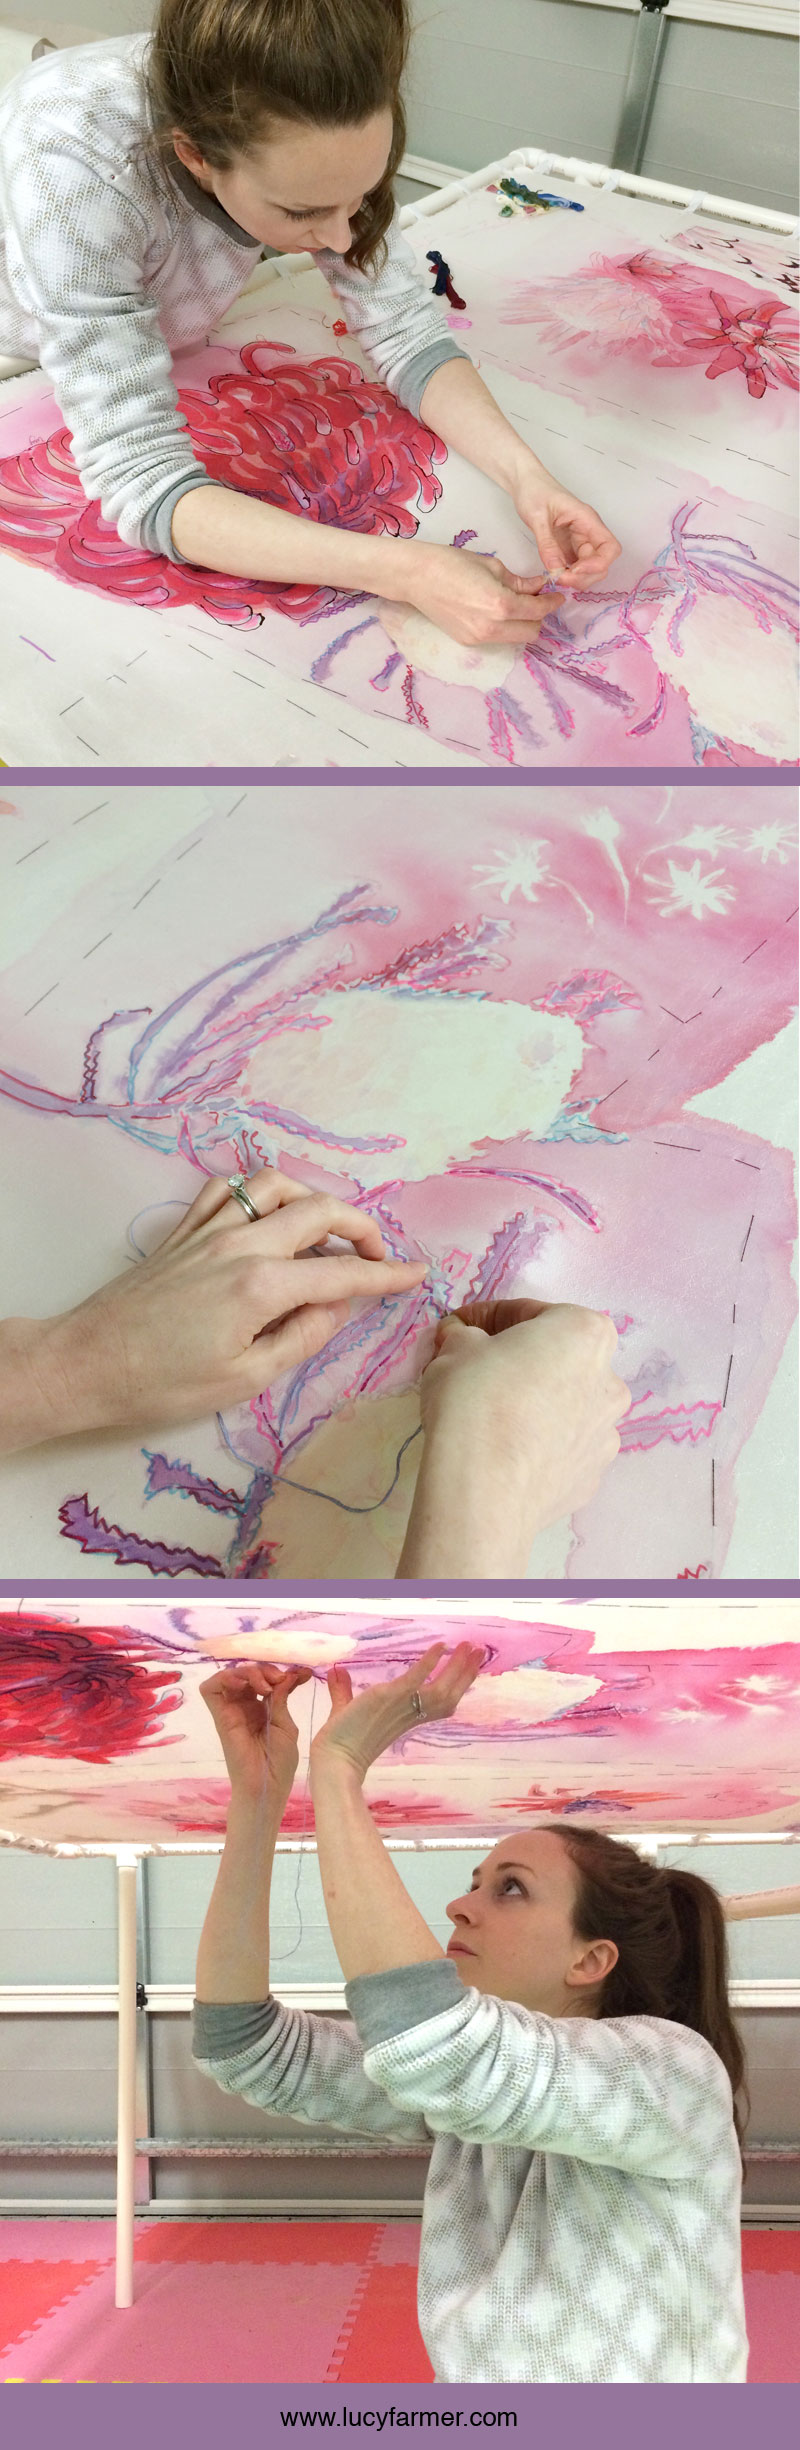 Artist Lucy Farmer hand embroiders her silk paintings to add detail and texture.